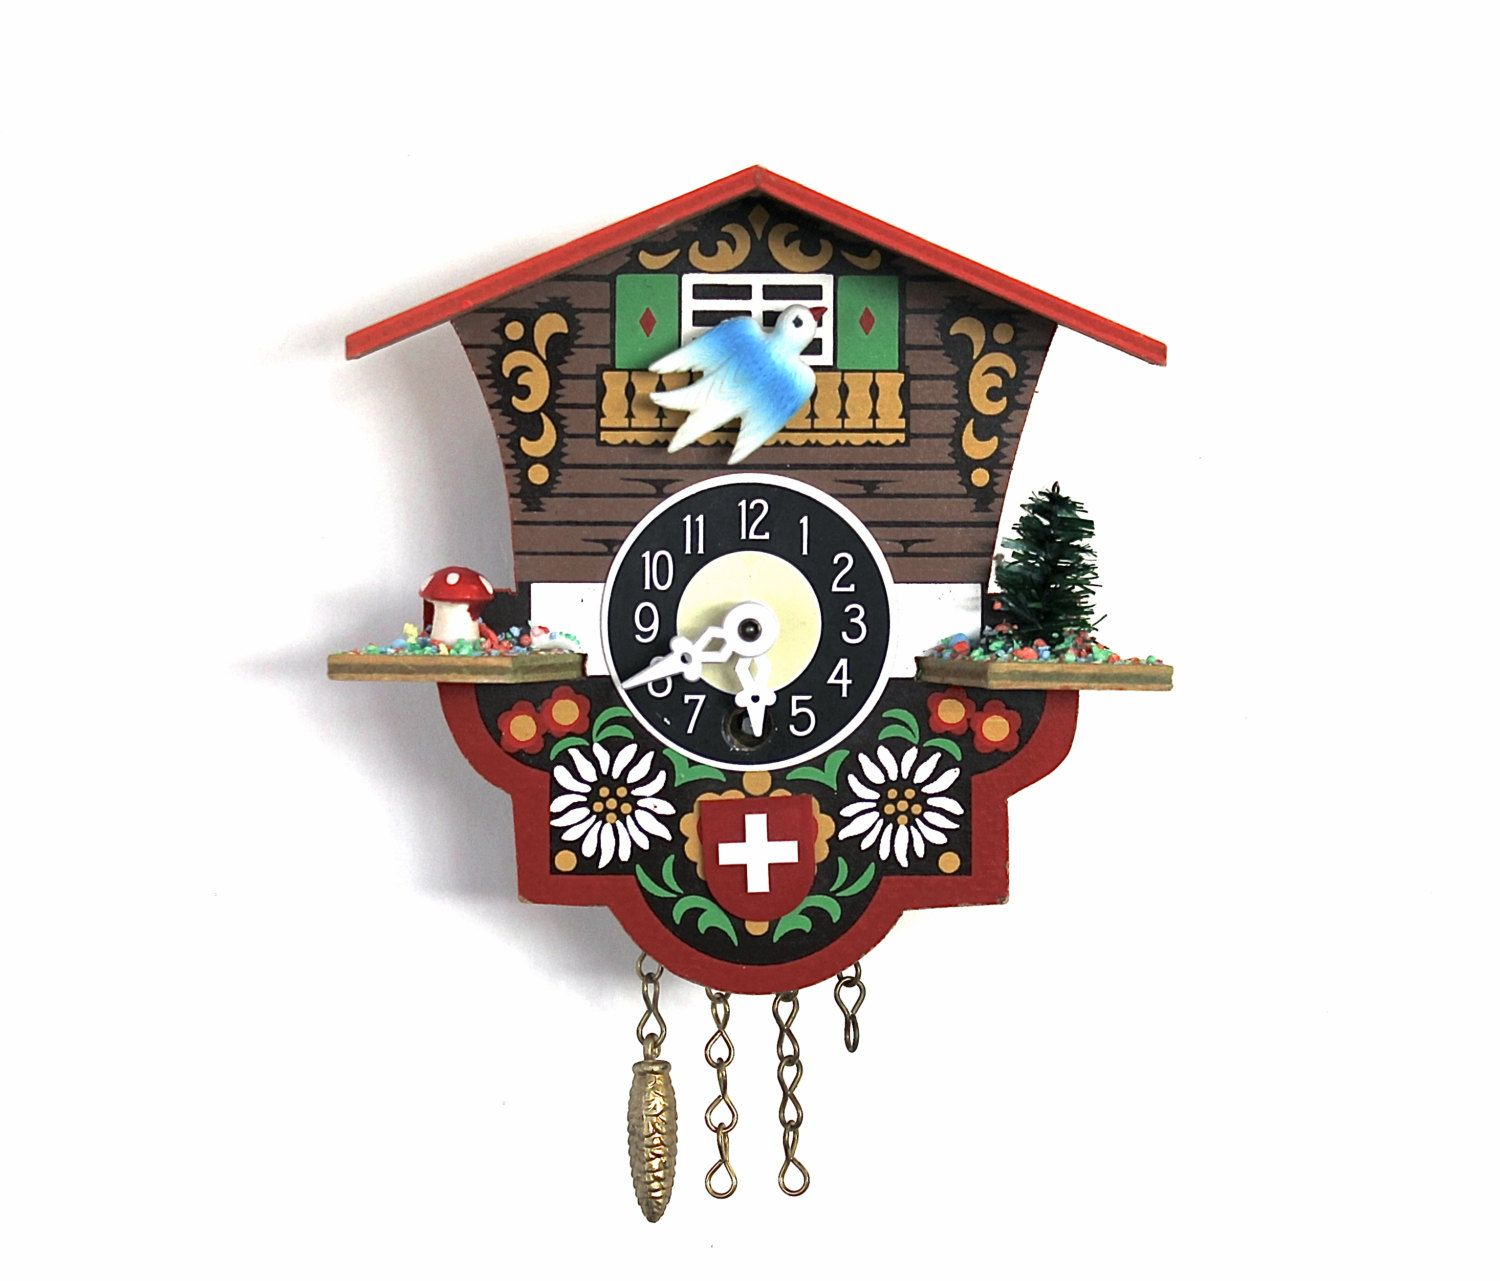 One Flew Over The Cuckoo Clock - Vintage German Cuckoo Clock - Red ...